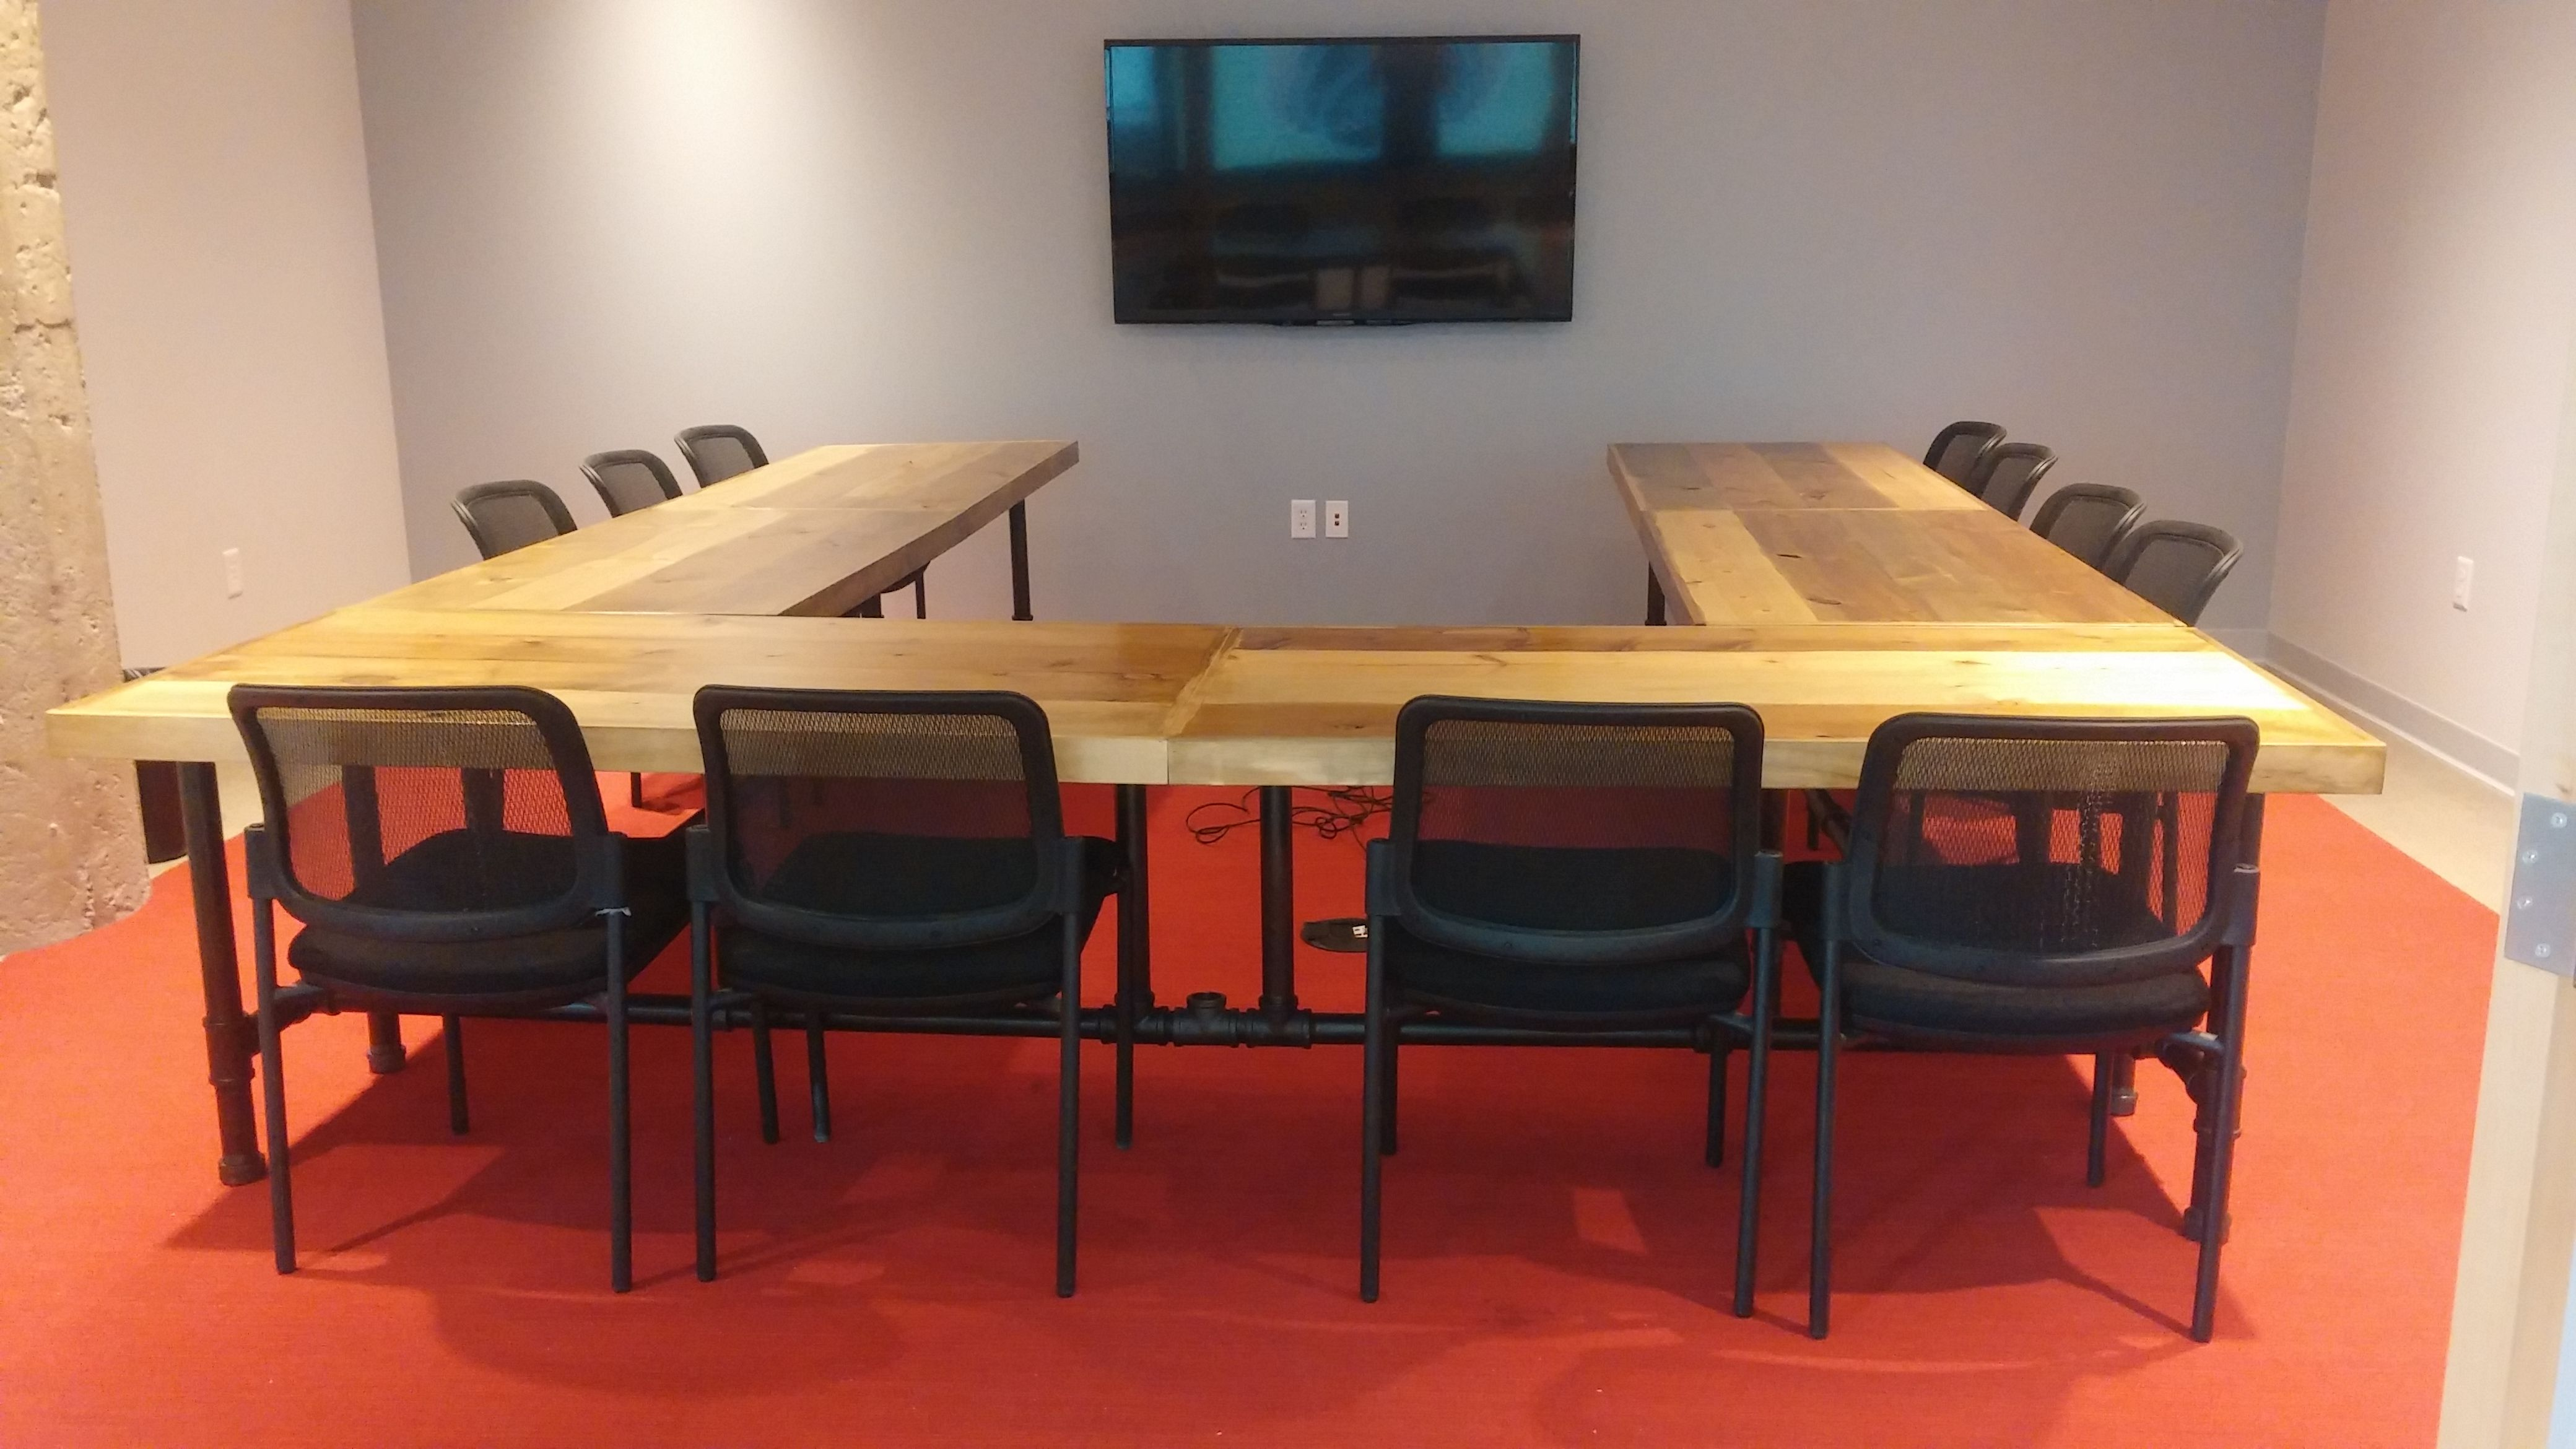 U Shaped Conference Tables Done In A Barn Wood Lookvery Nice - U shaped conference table